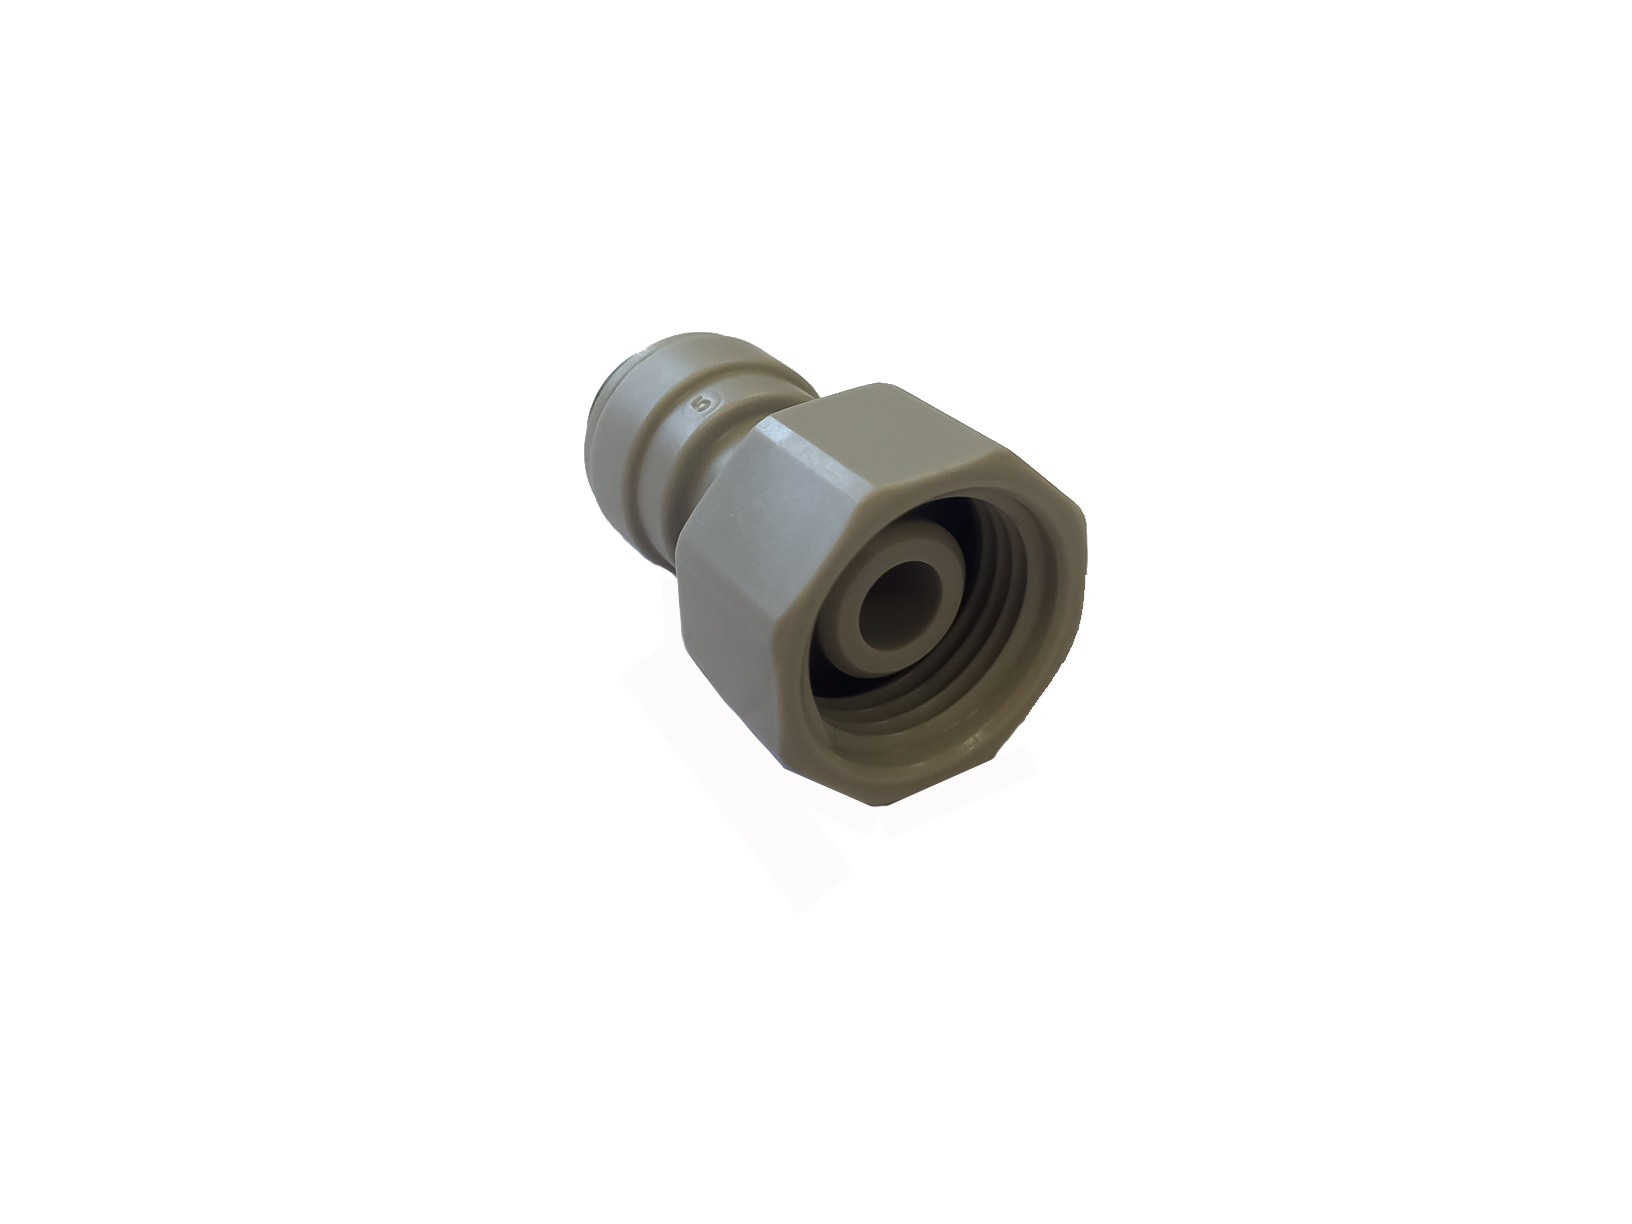 "Female Adaptor 3/8"" x 5/8 bsp Cone"